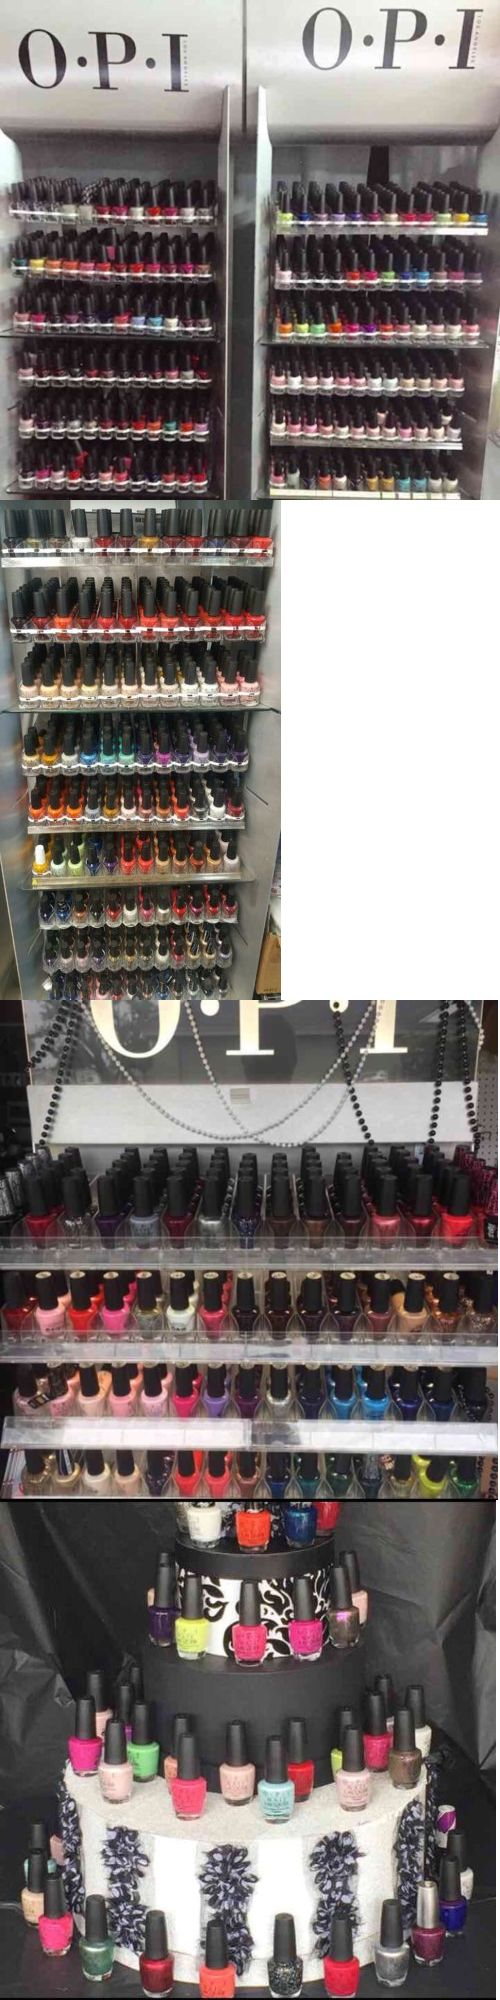 Nail Polish: Opi Nail Polish Lot Of 100 Assorted Colors - 0.5 Oz Each New Authentic Wholesale -> BUY IT NOW ONLY: $249.99 on eBay!